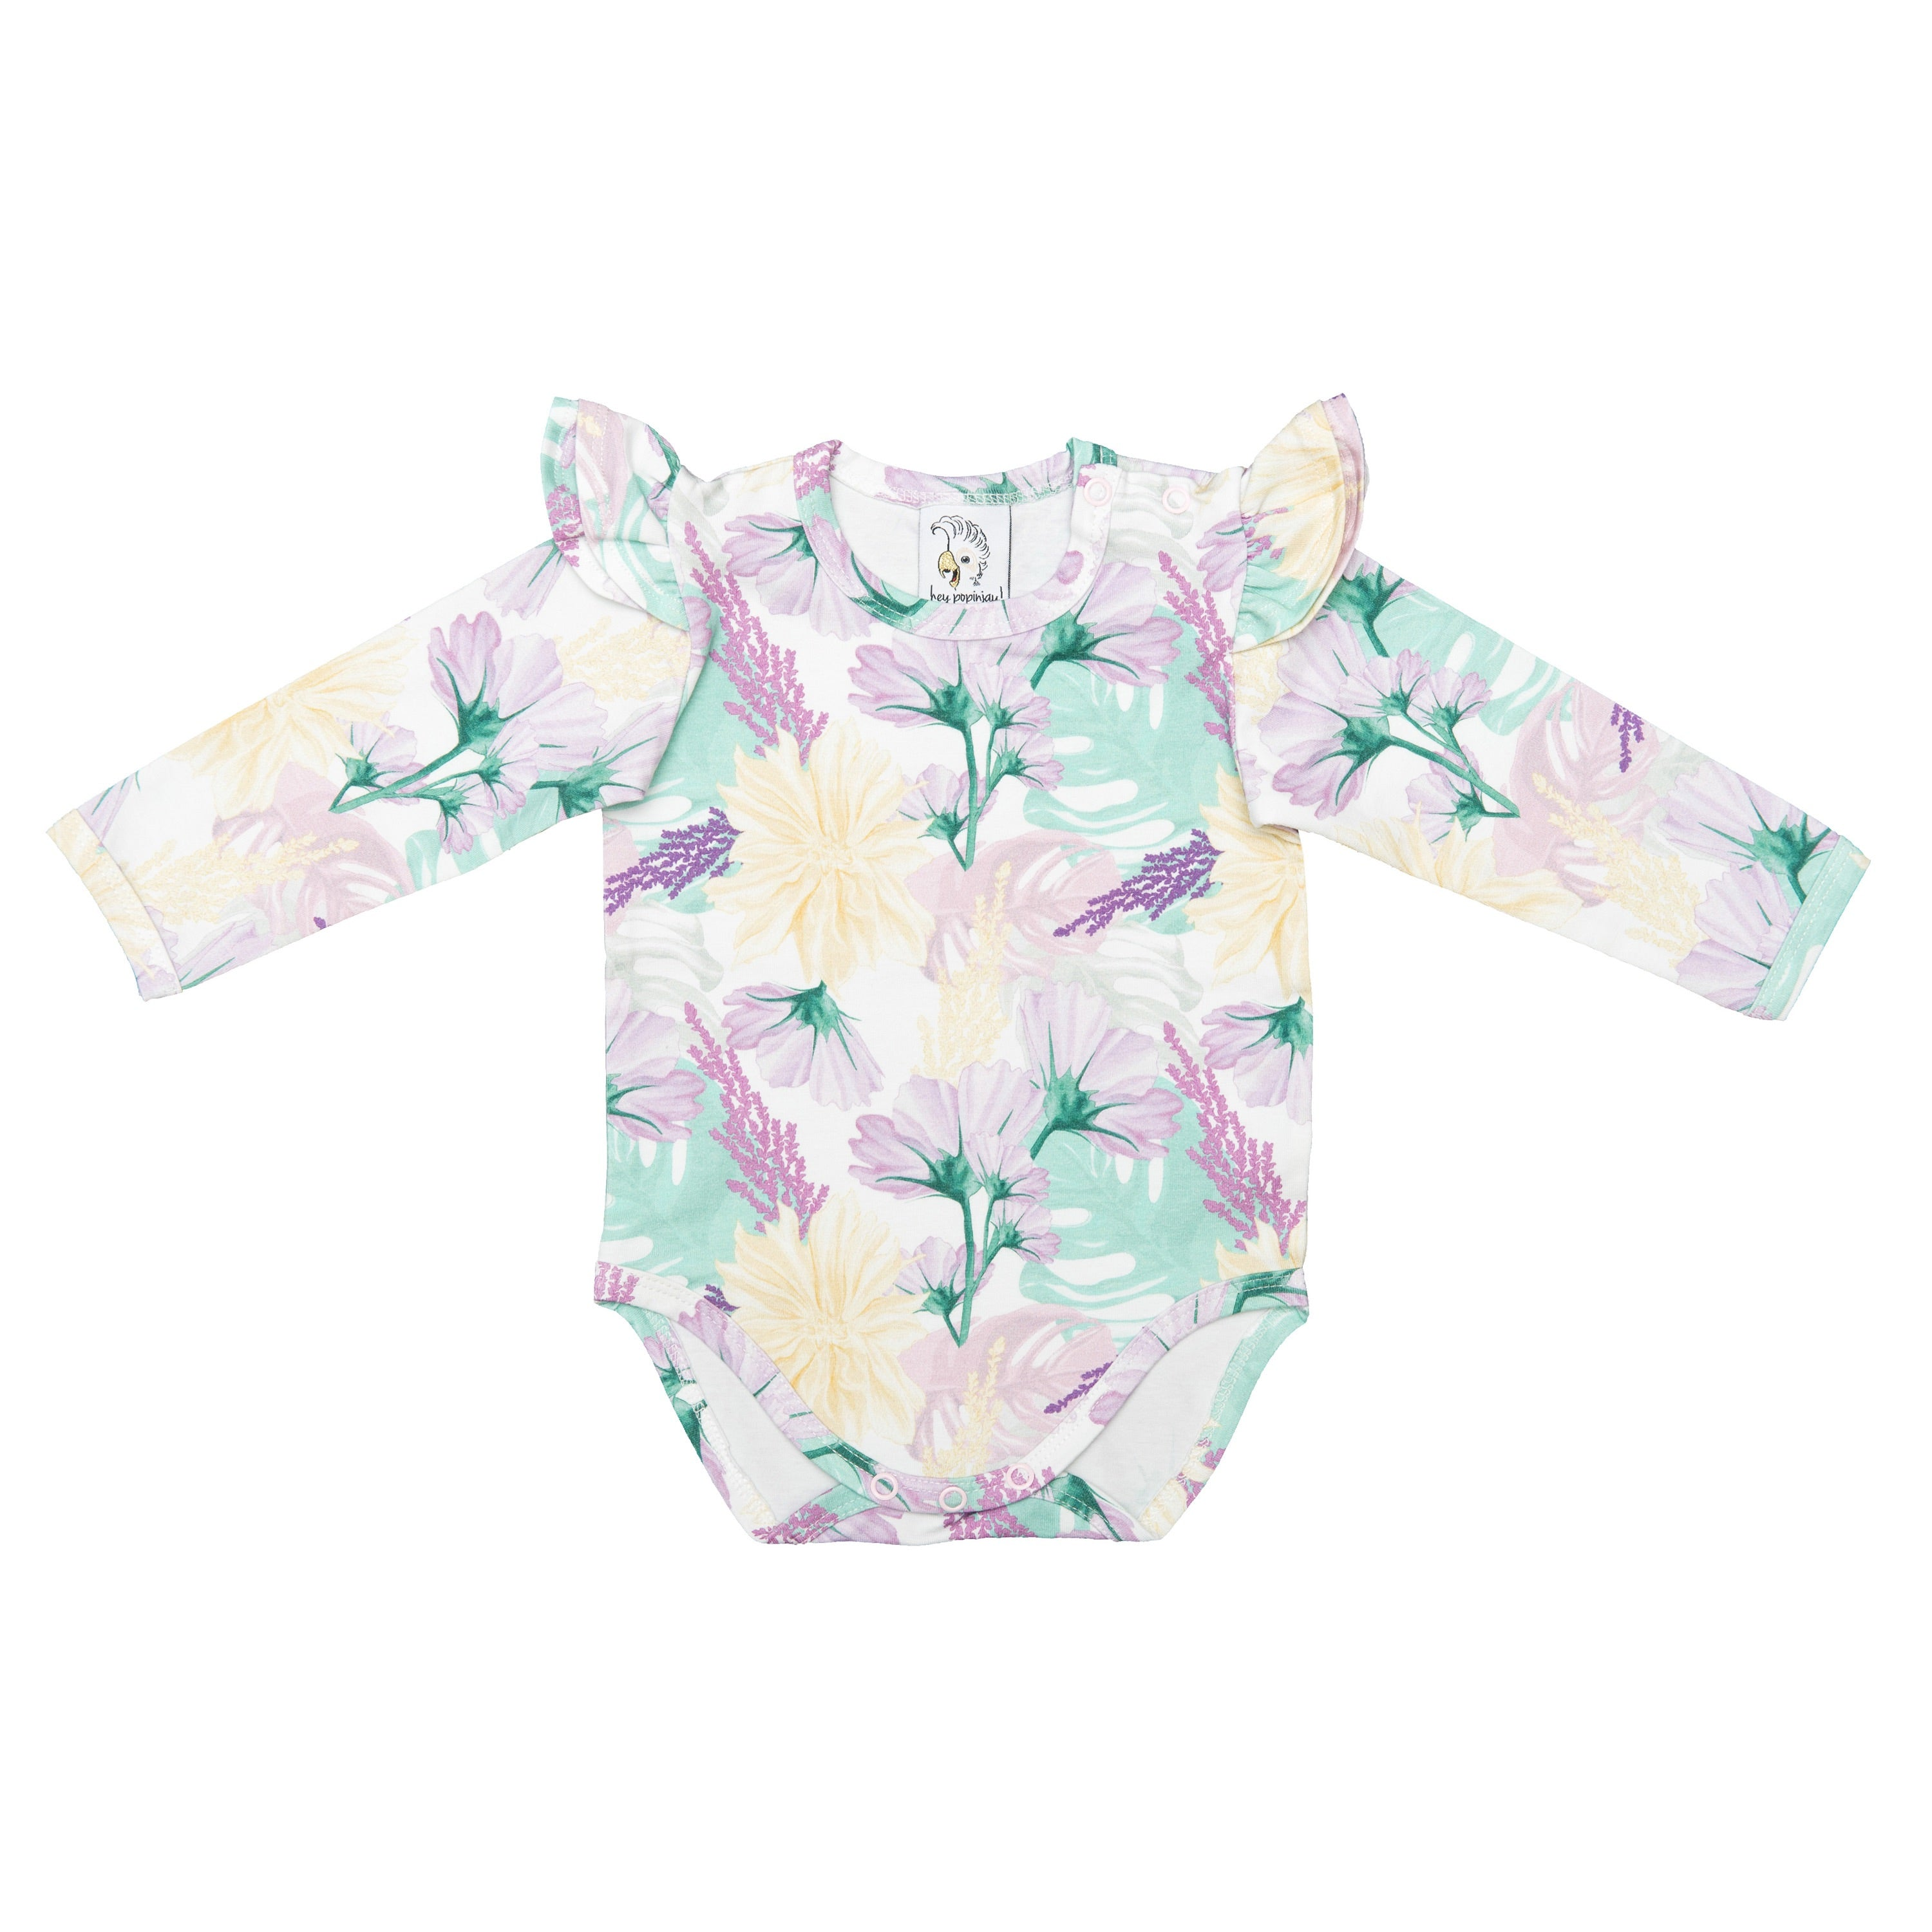 MEADOW FRILL BODY SUIT